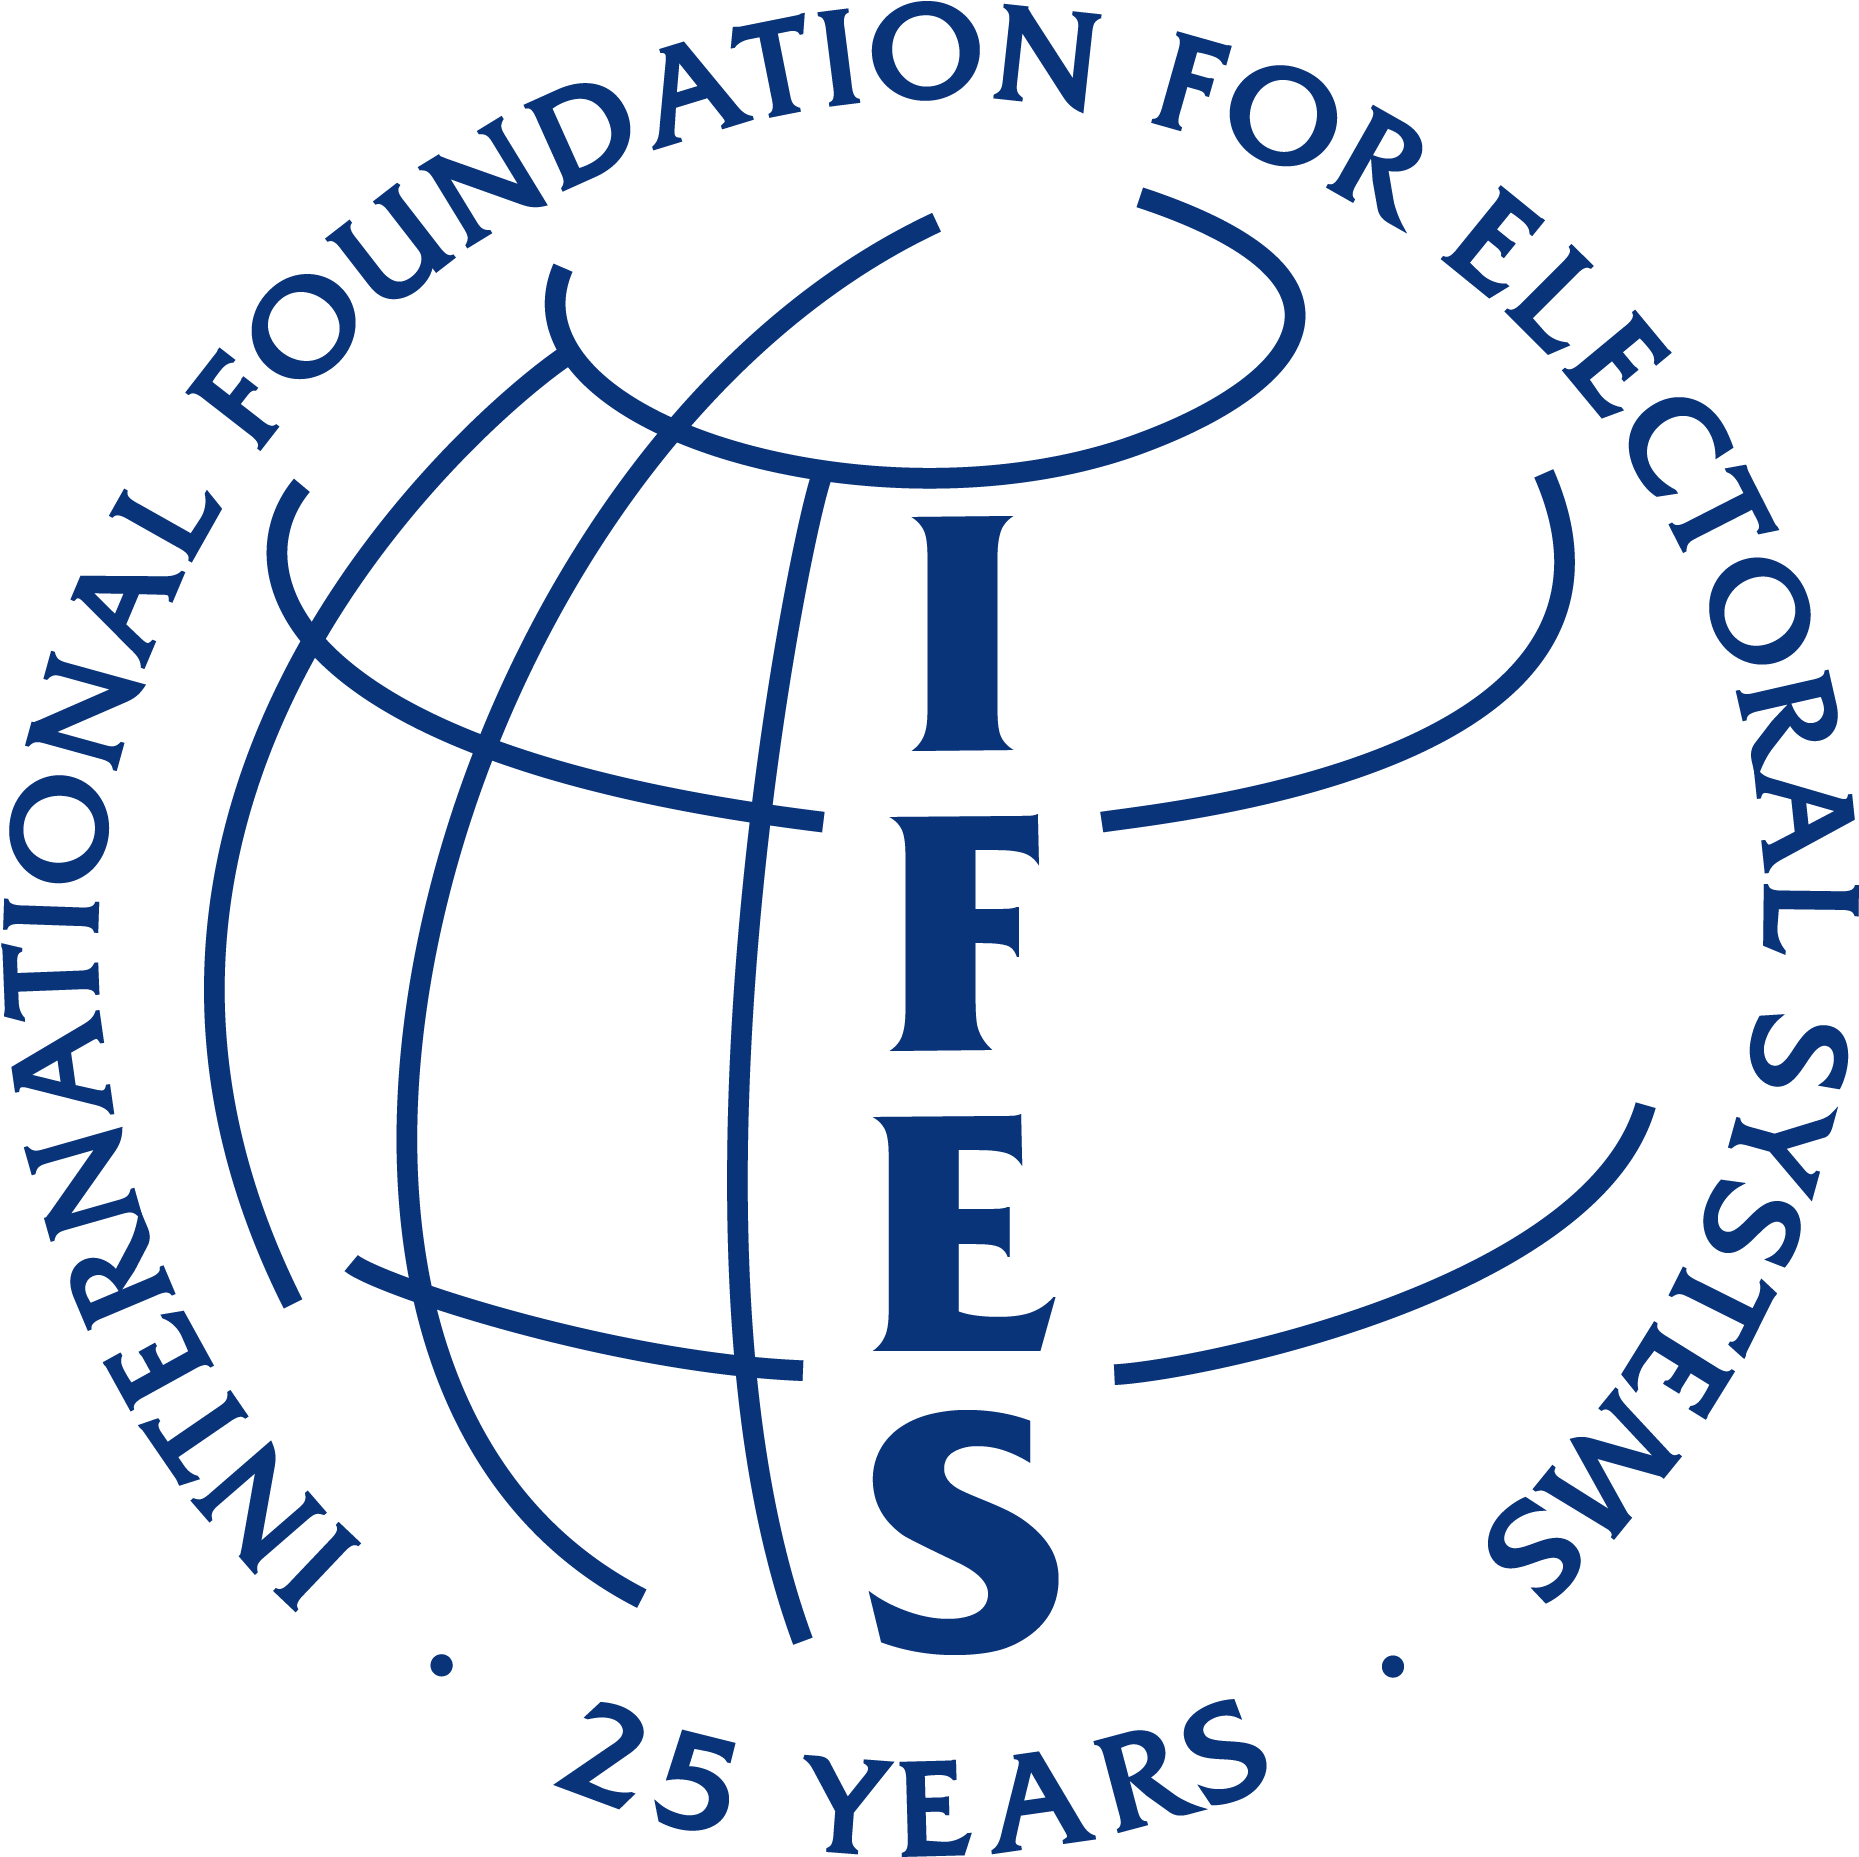 International Foundation of Electoral Systems IFES.